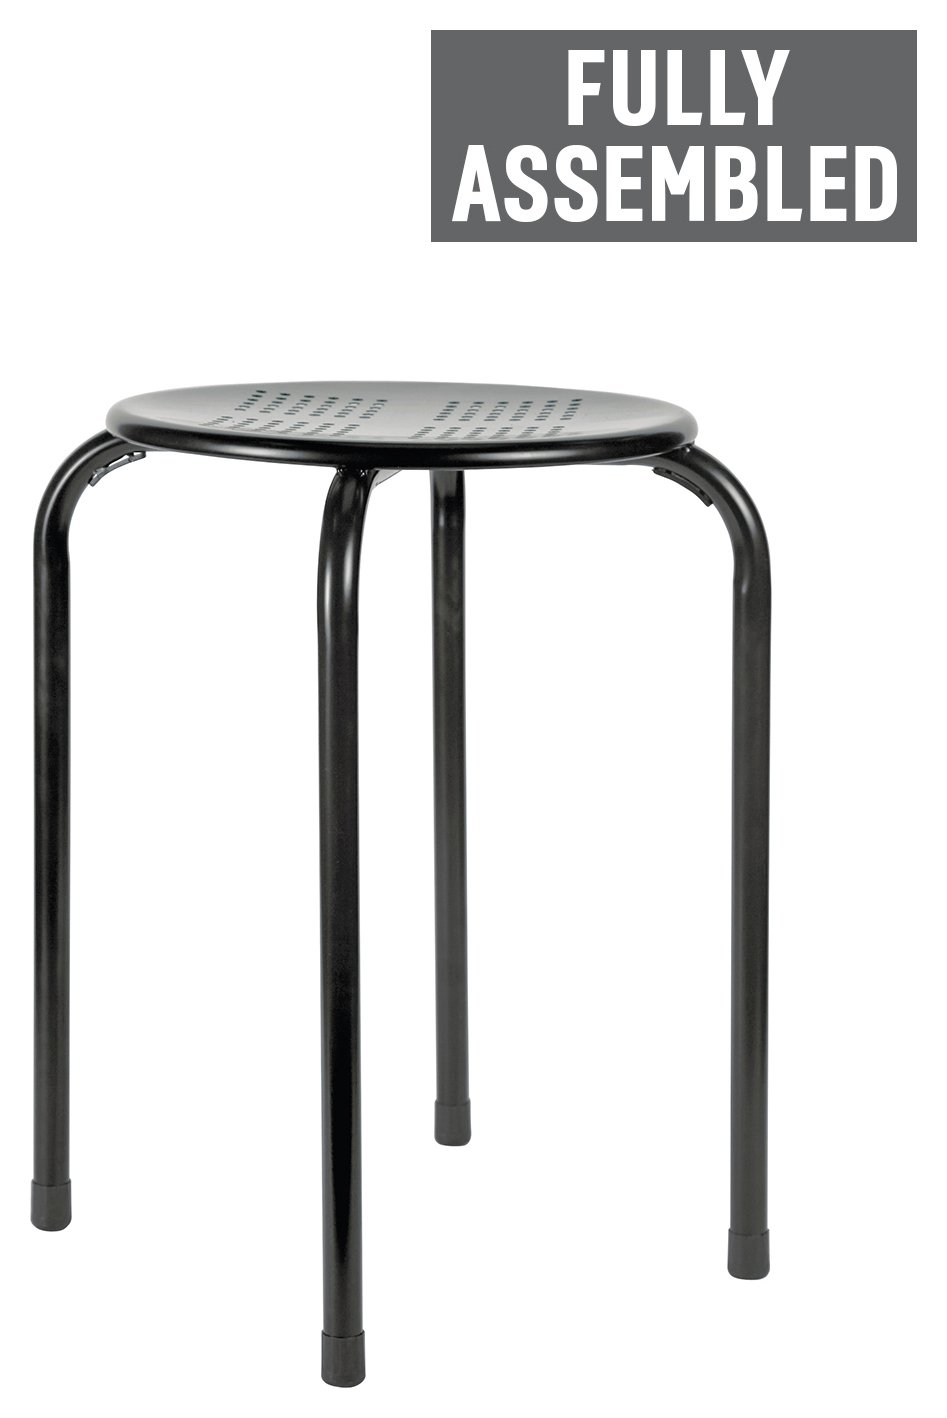 Simple Value Metal Stacking Dining Stool - Black  sc 1 st  Argos & Buy Simple Value Metal Stacking Dining Stool - Black at Argos.co ... islam-shia.org